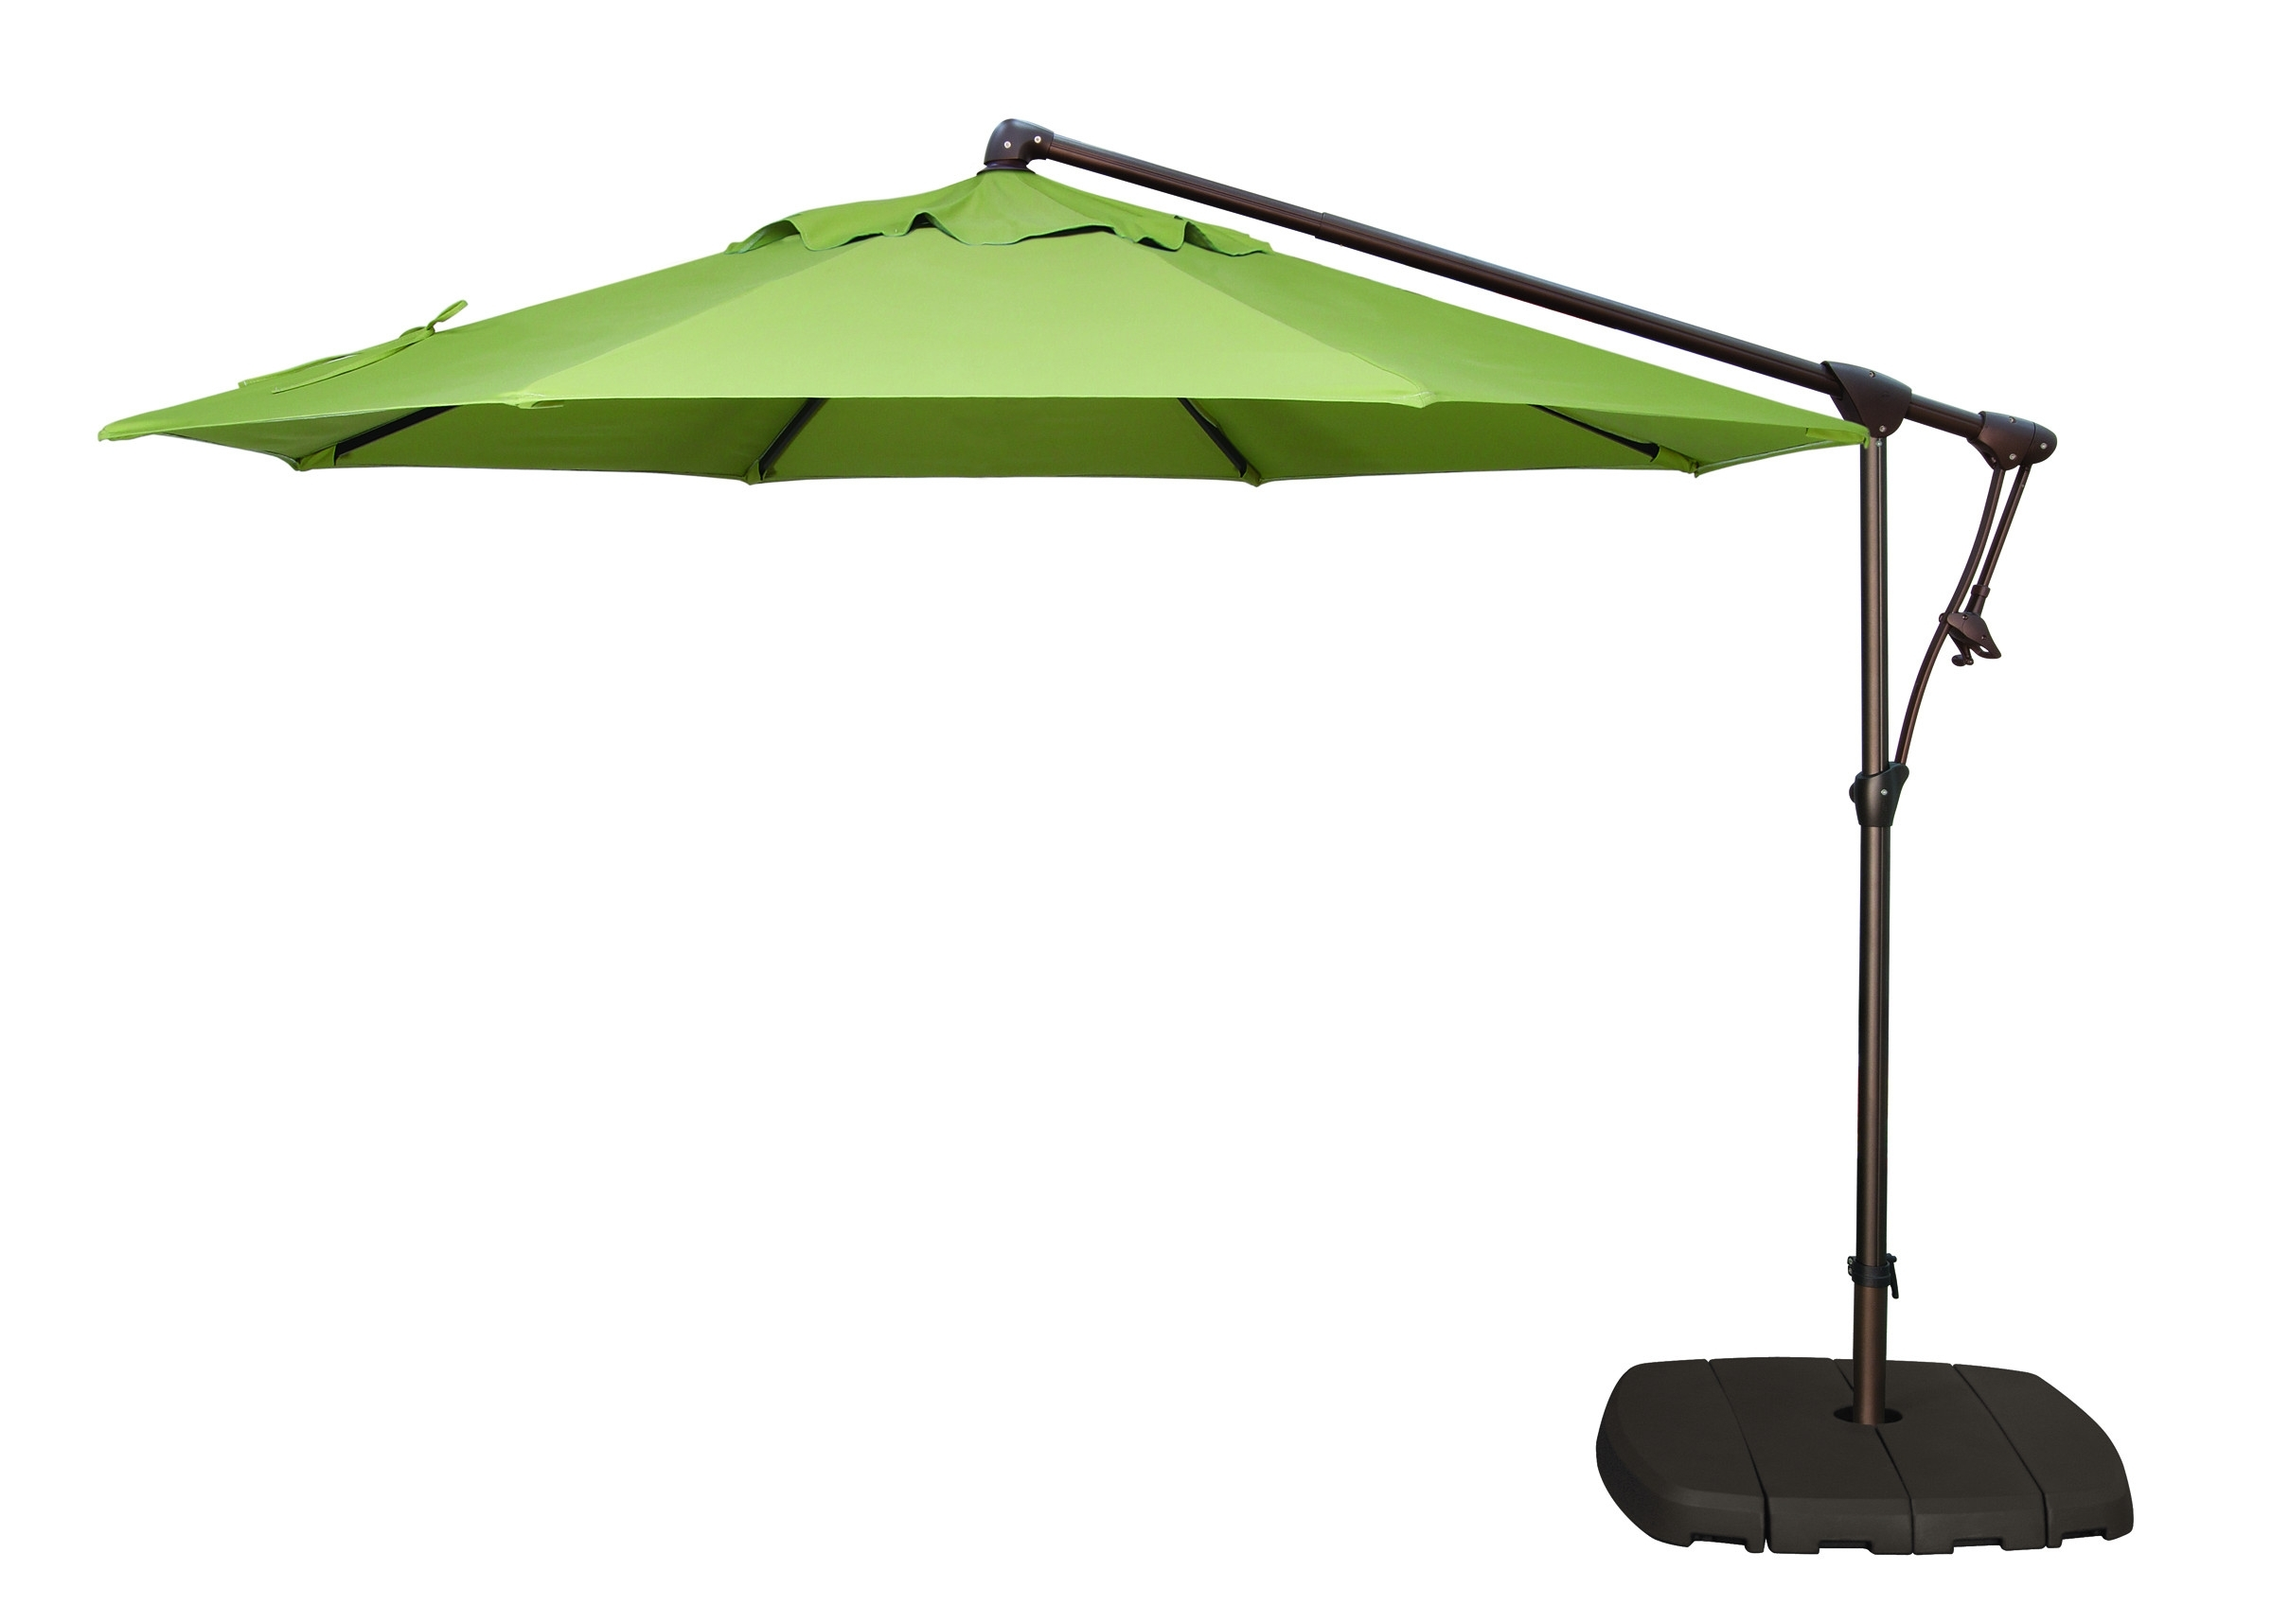 Latest Walmart Patio Umbrellas Patios Outstanding Umbrella For Stunning For Walmart Umbrellas Patio (View 2 of 20)